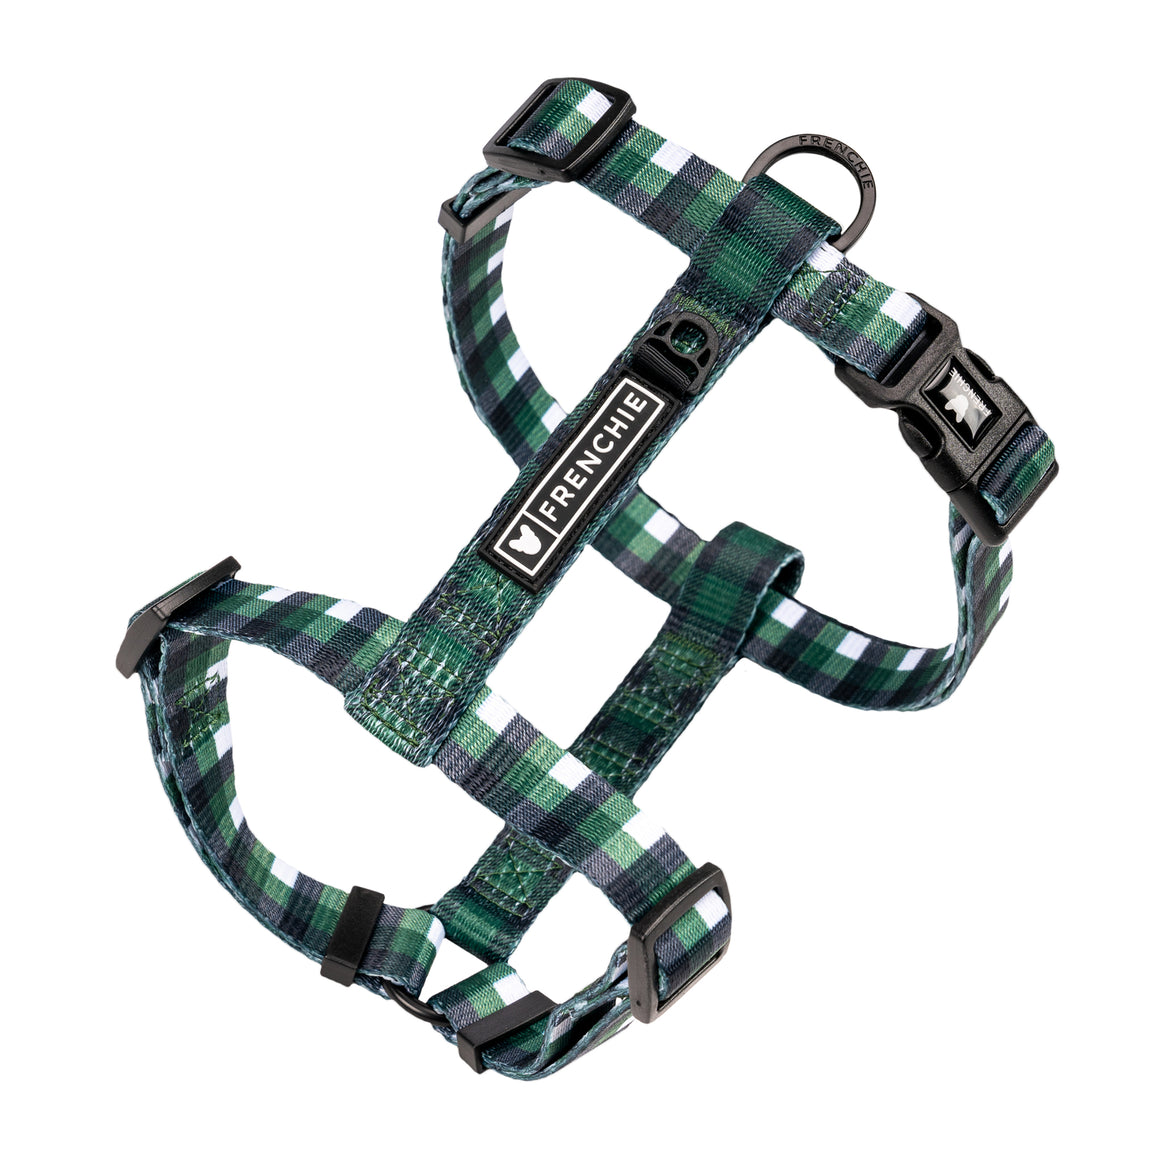 Frenchie Strap Harness - Emerald Plaid - Frenchie Bulldog - Shop Harnesses for French Bulldogs - Shop French Bulldog Harness - Harnesses for Pugs